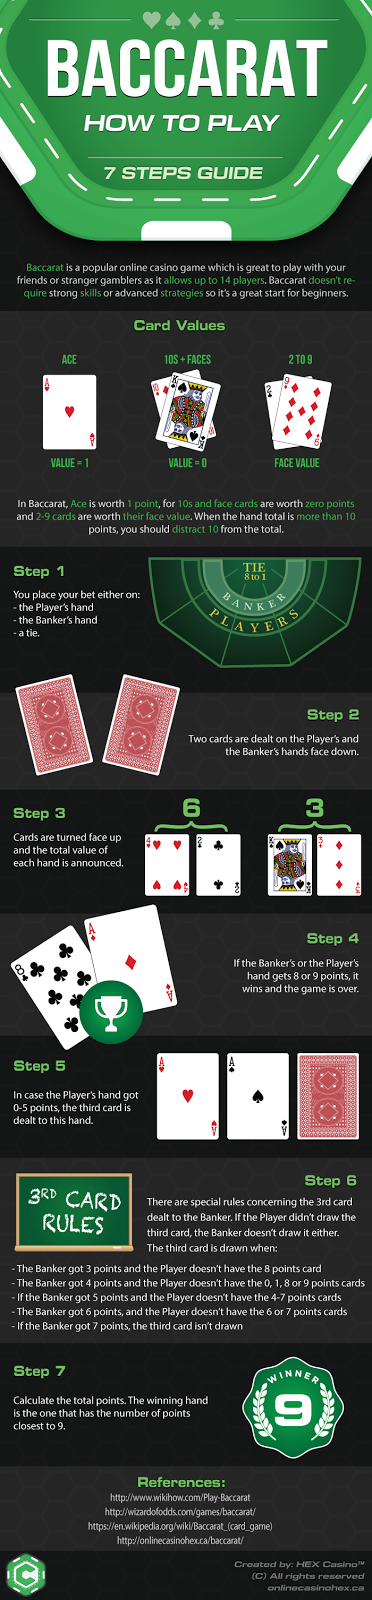 How To play Baccarat - Rules - Infographic